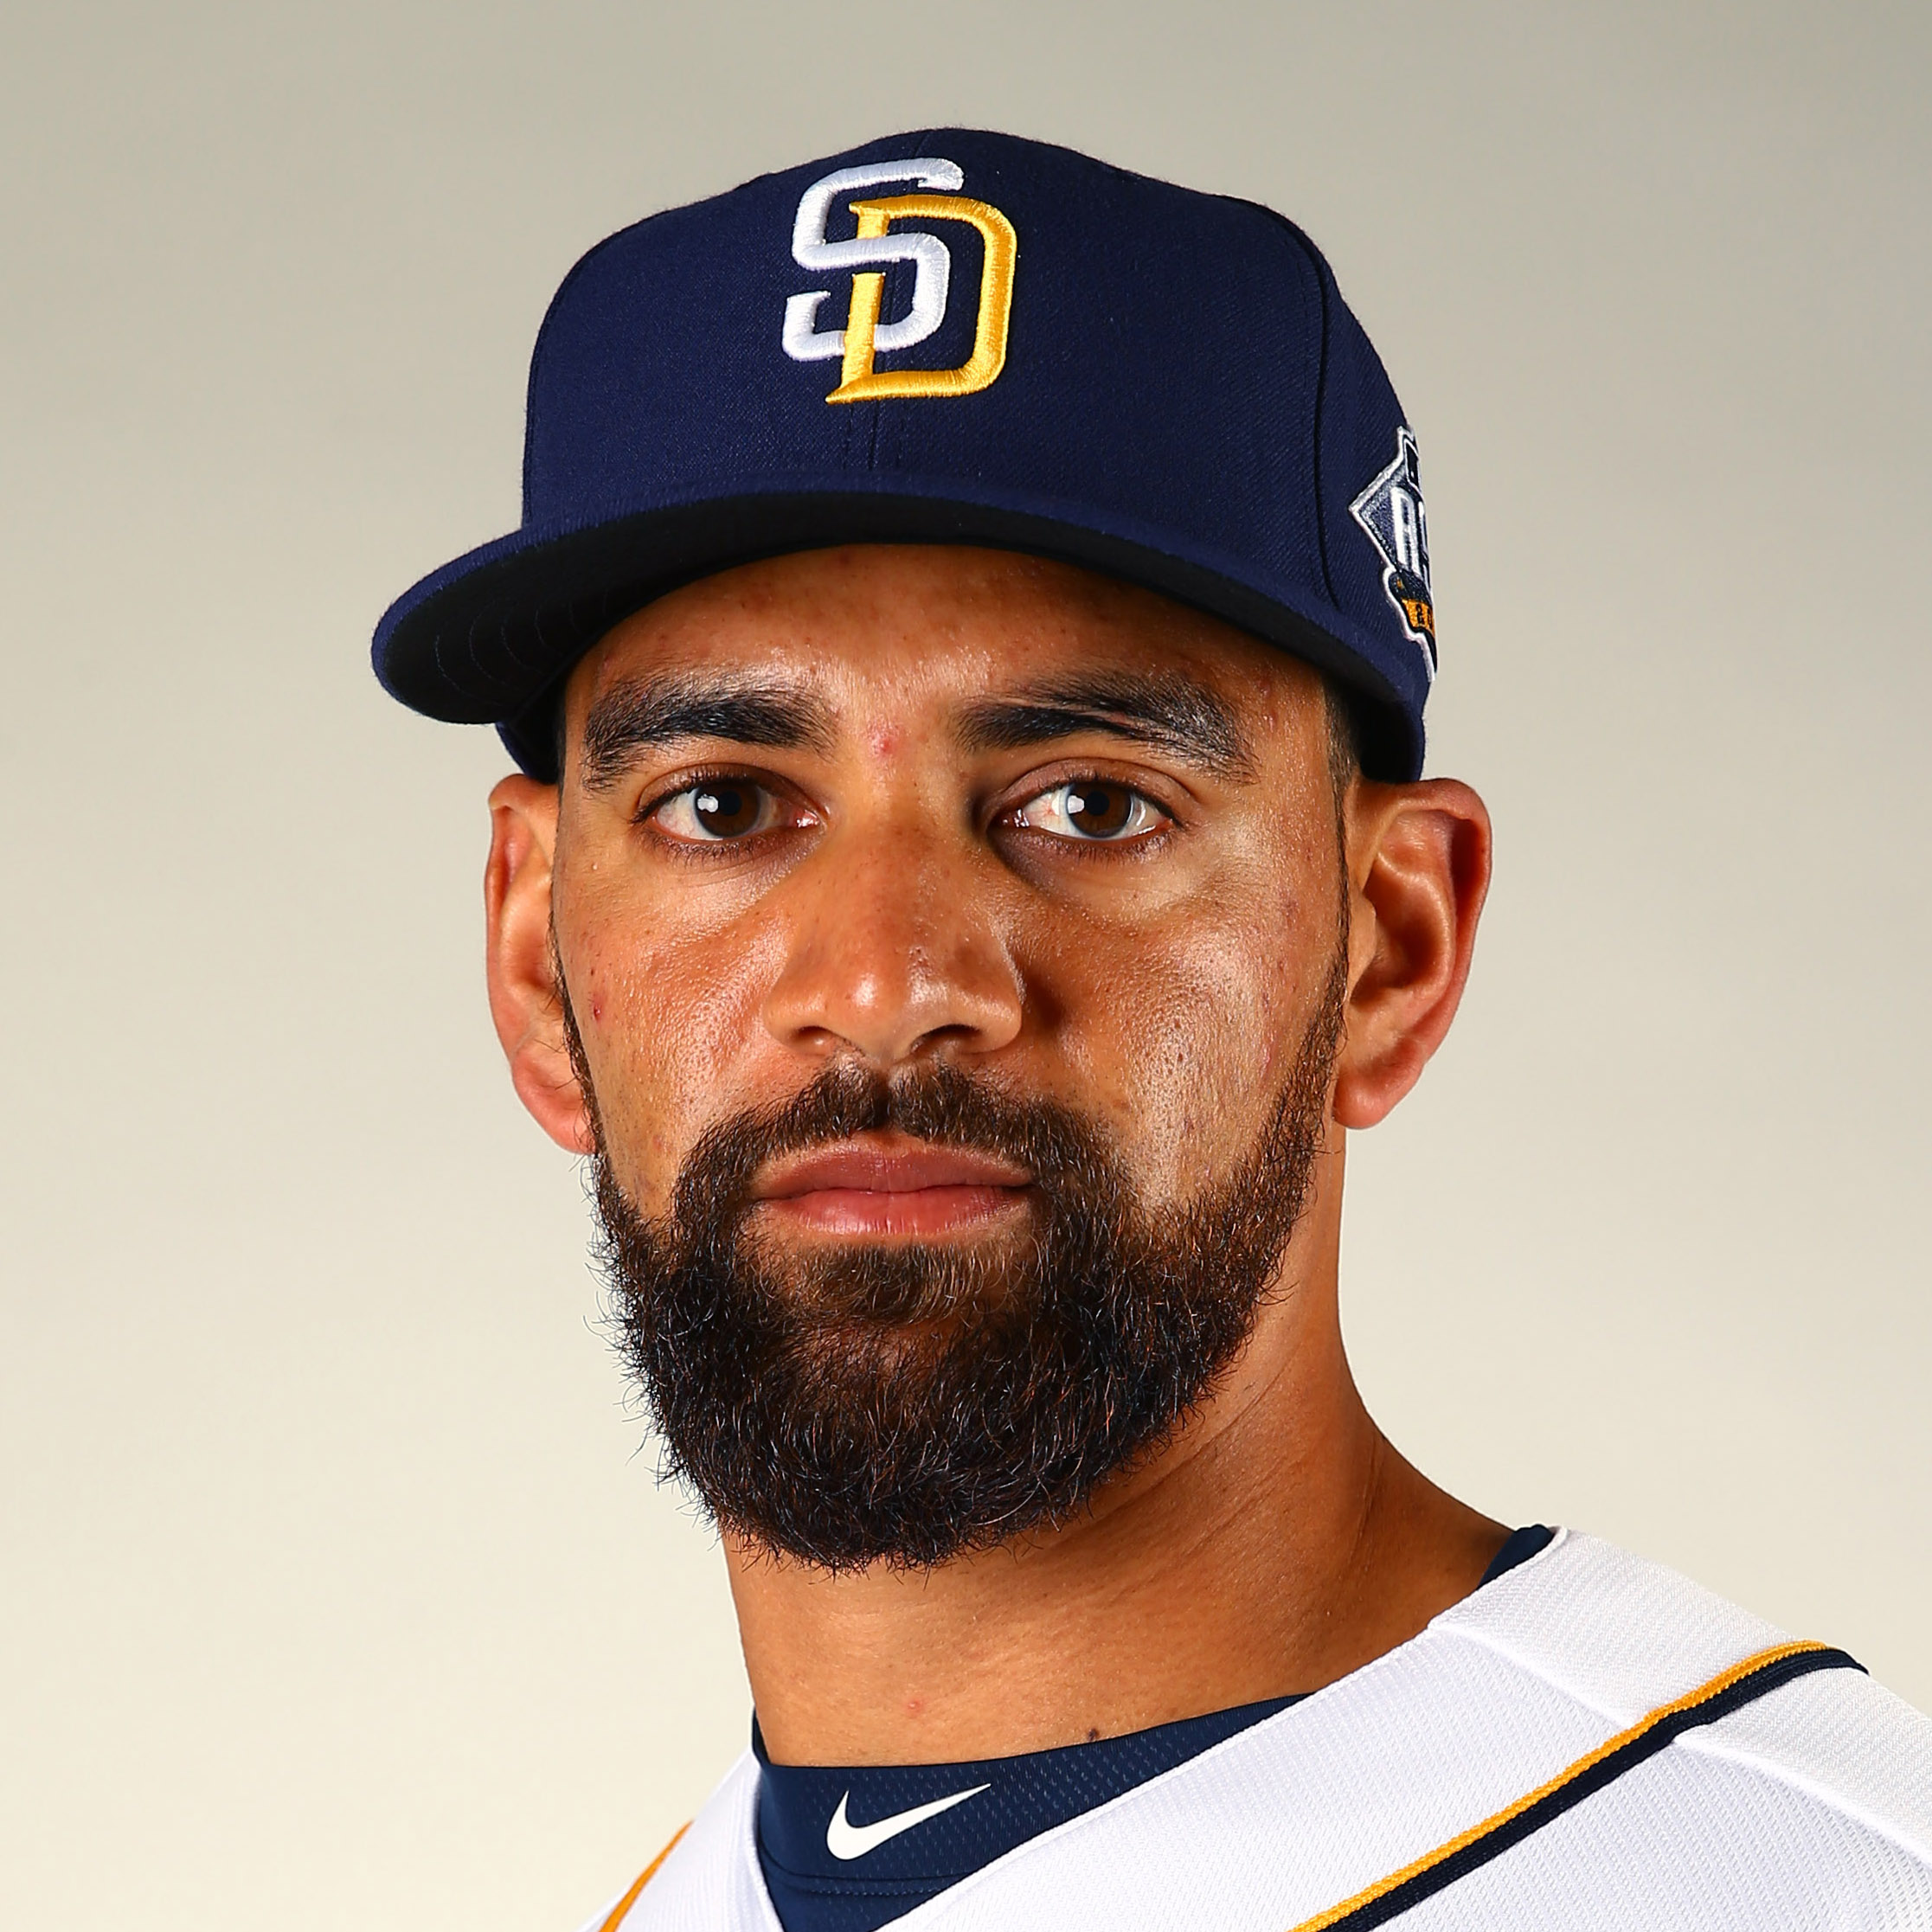 Tyson Ross Headshot